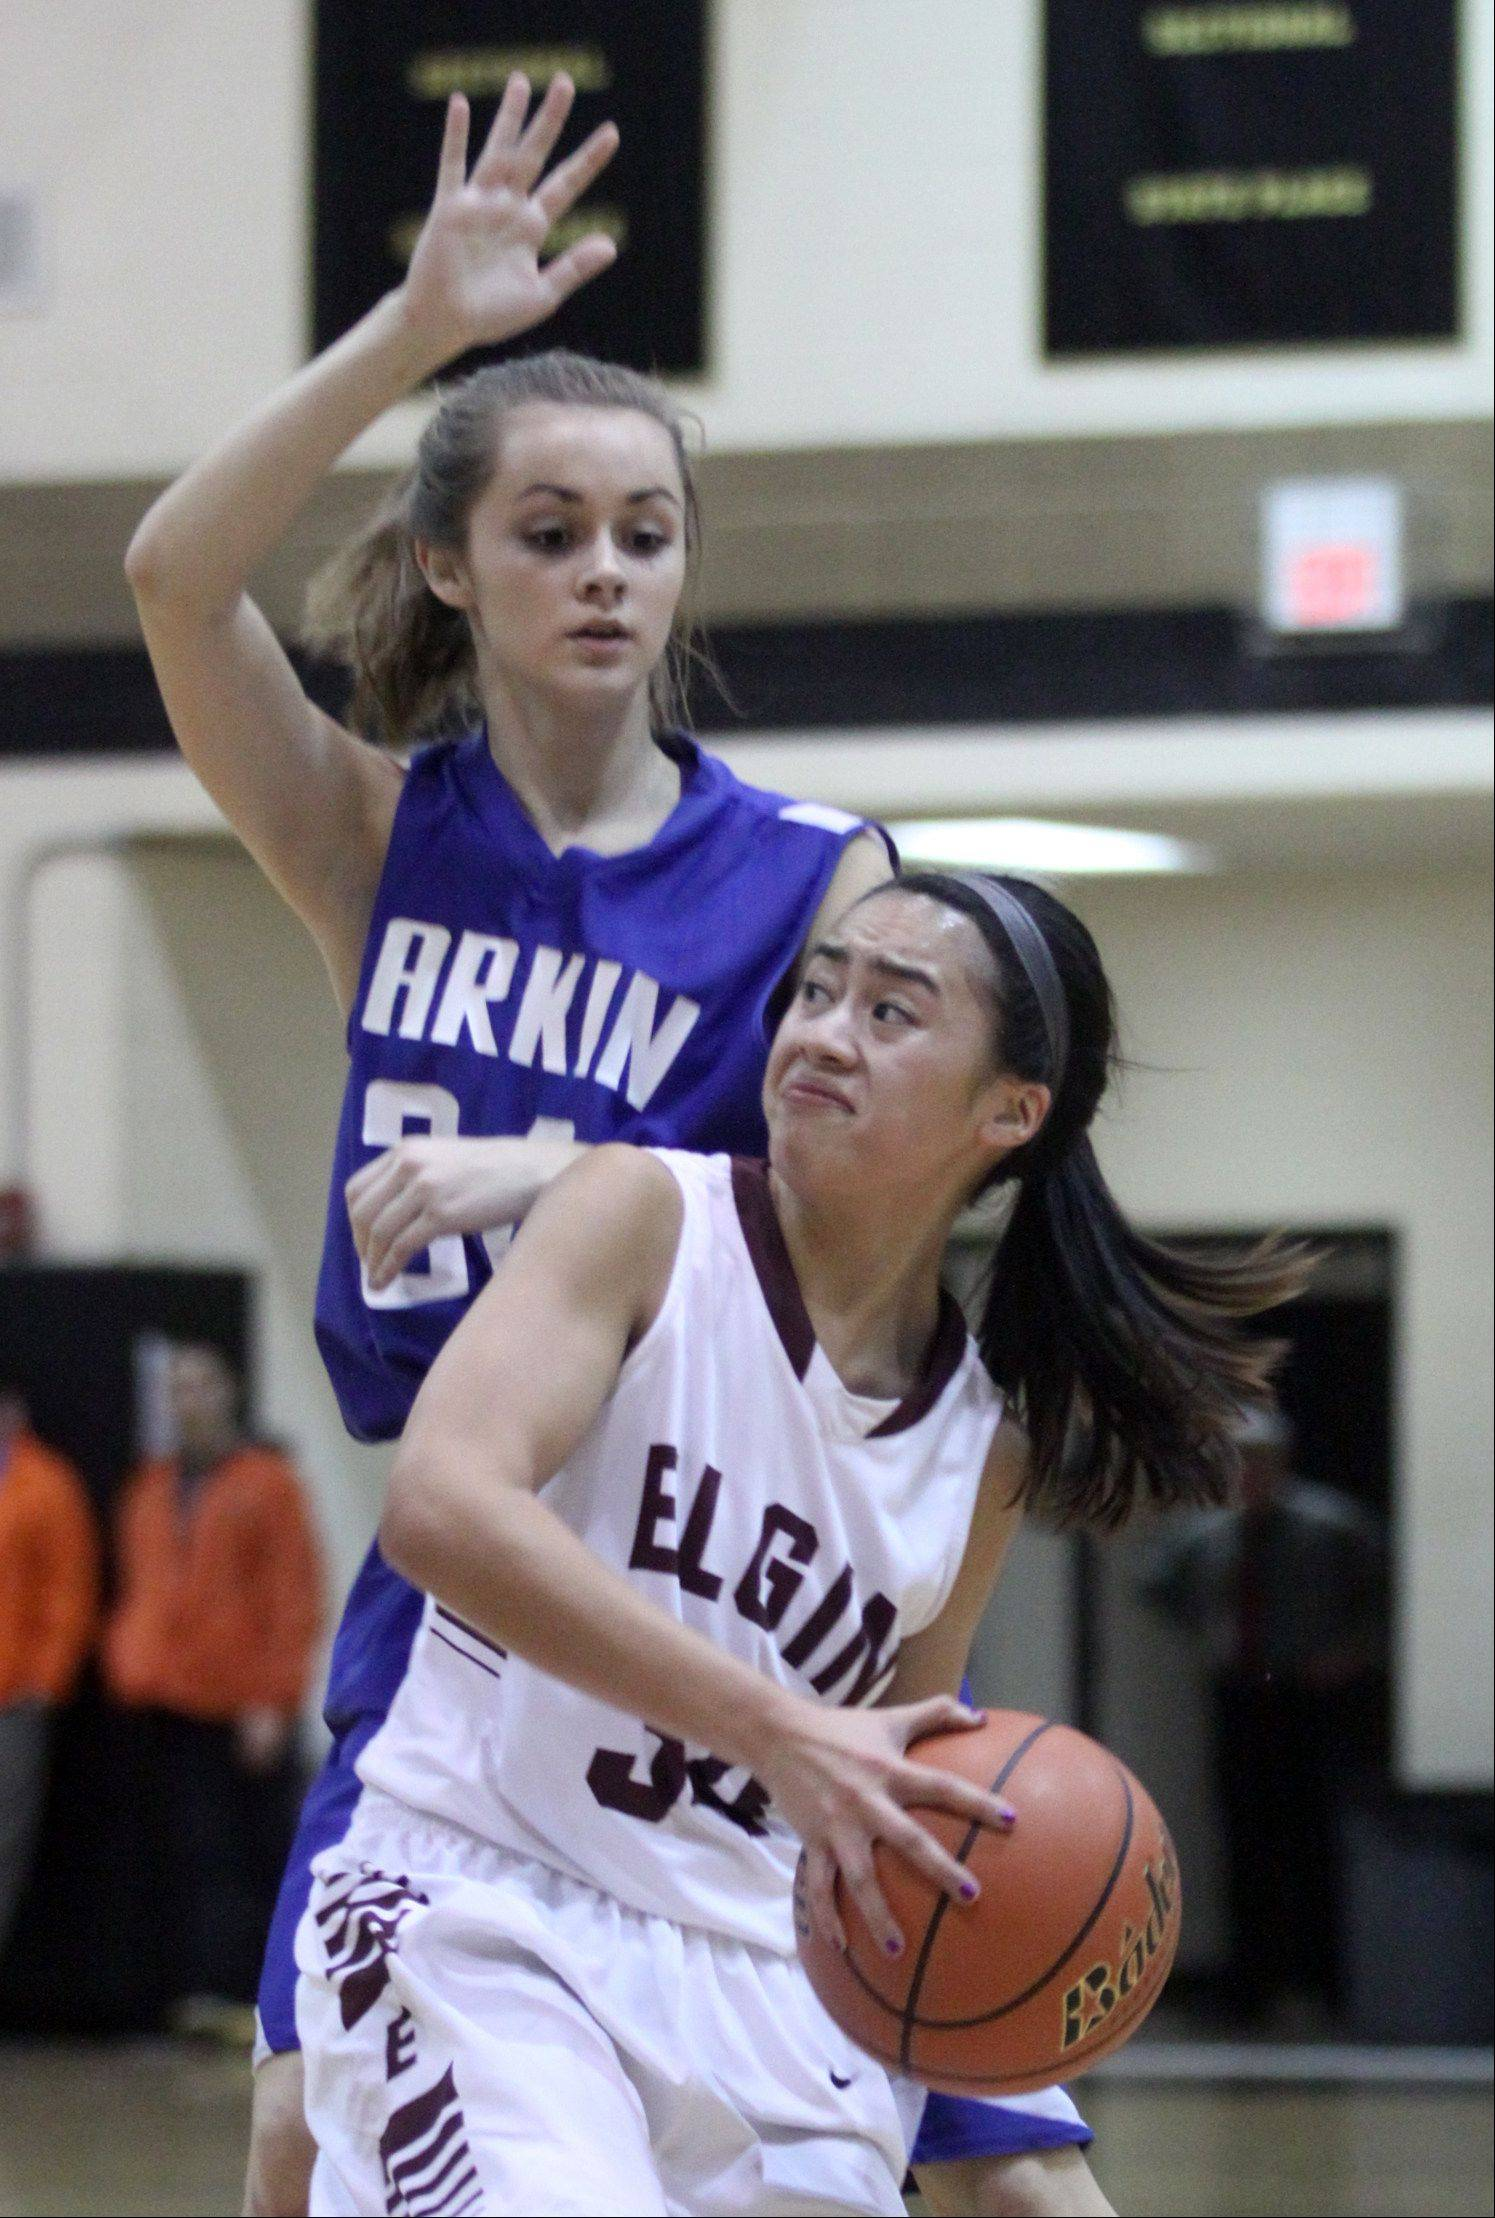 Images from the Elgin vs. Larkin girls regional basketball game Monday, February 11, 2013.